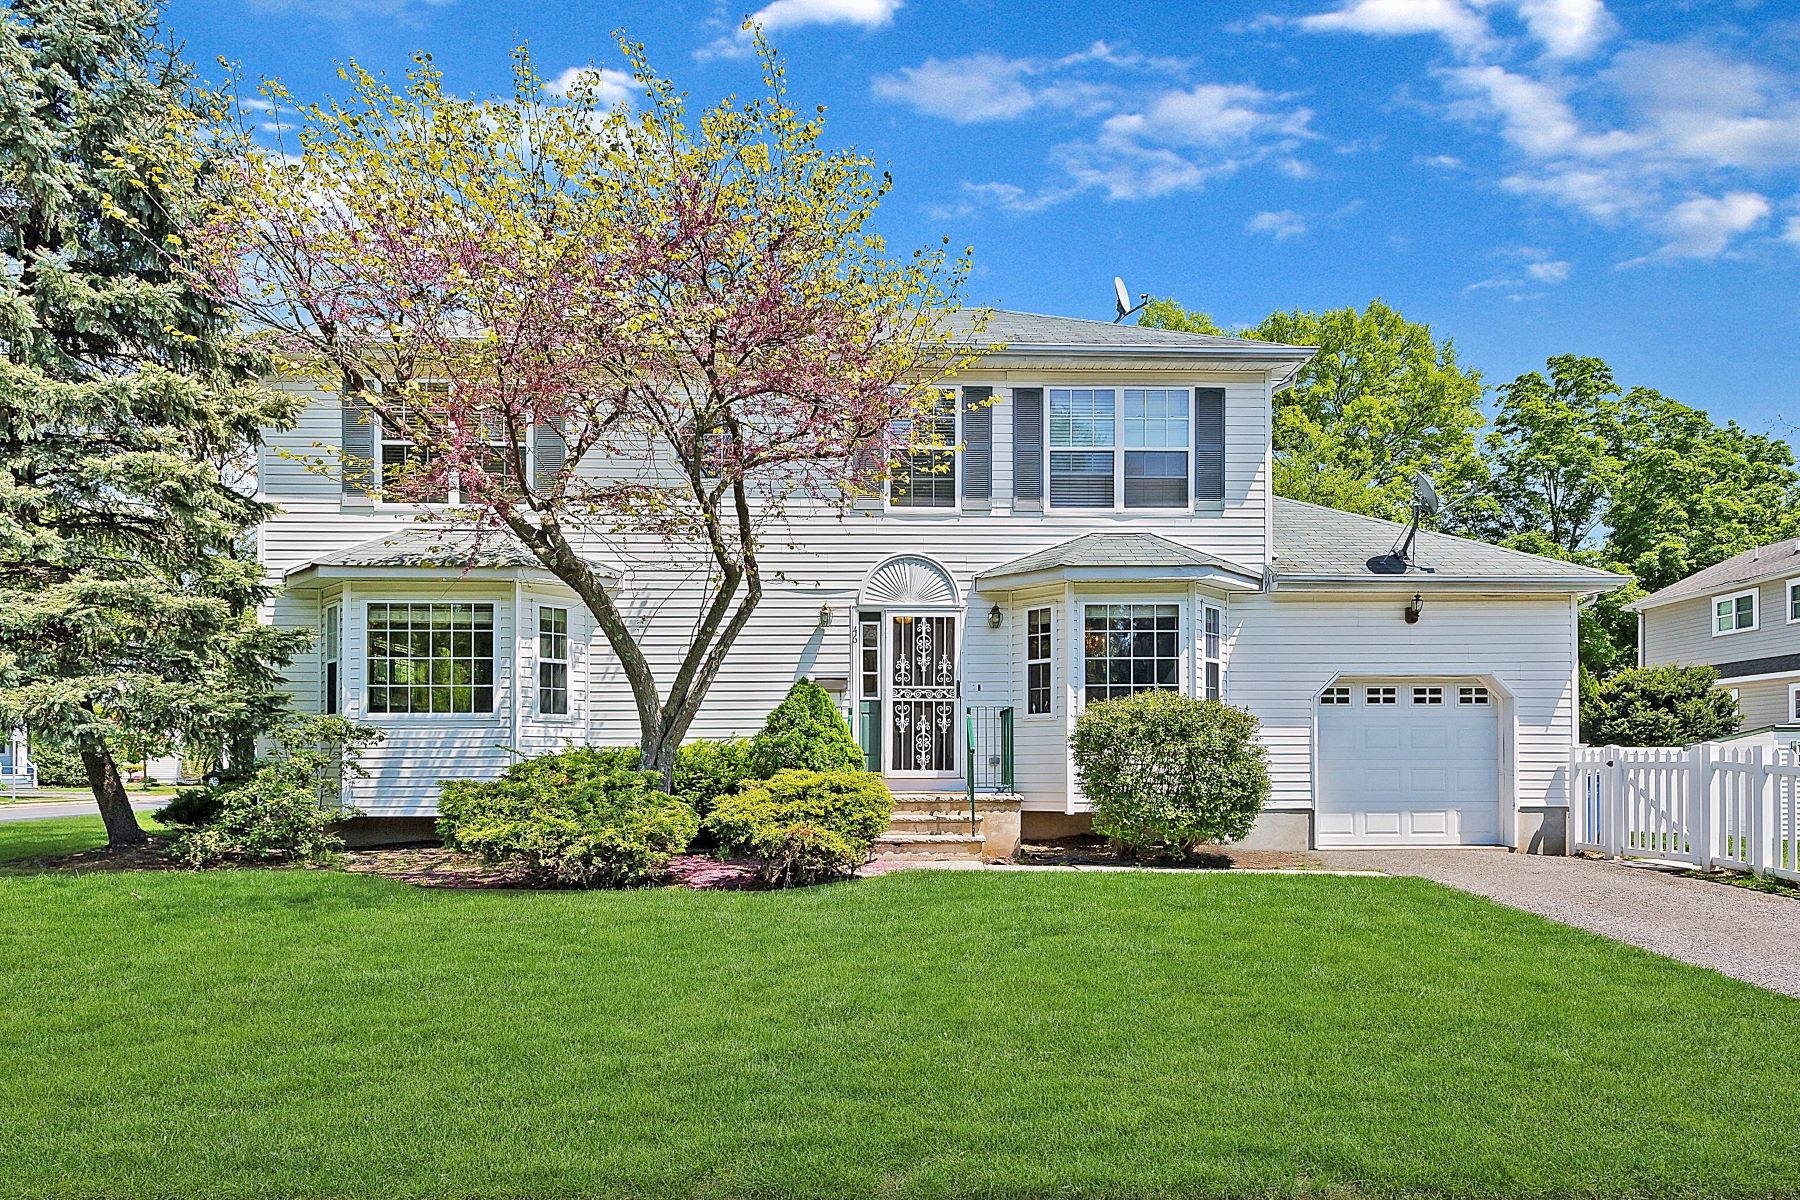 Single Family Homes for Sale at A Must See! 46 Kempson Place Metuchen, New Jersey 08840 United States